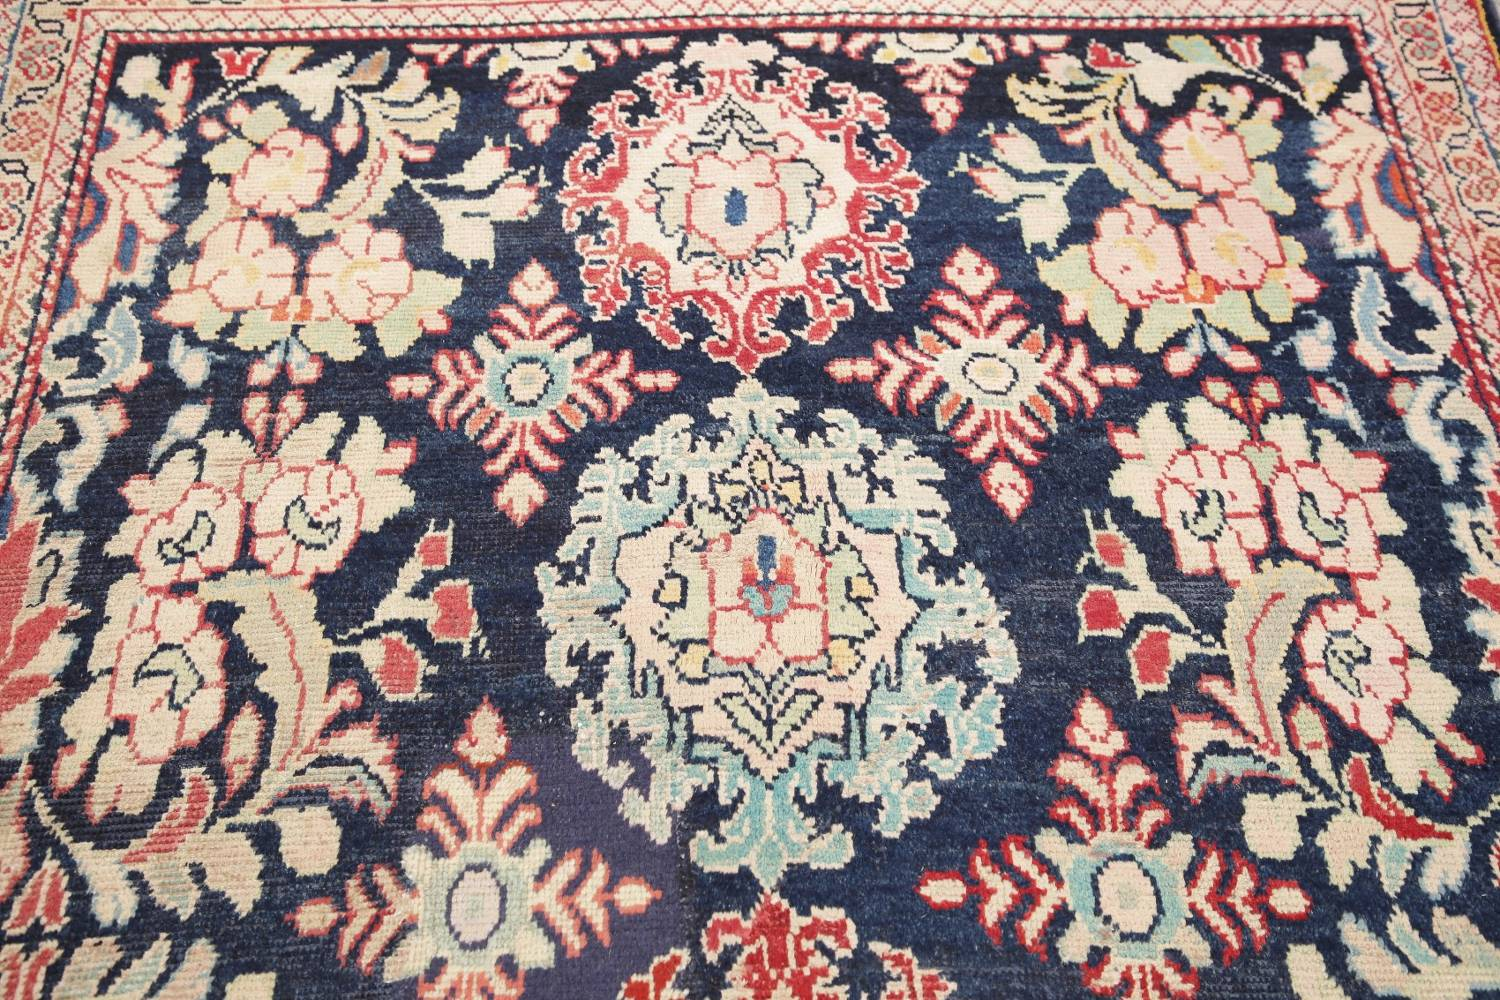 Antique Navy Blue Sultanabad Persian Runner Rug 5x9 image 13